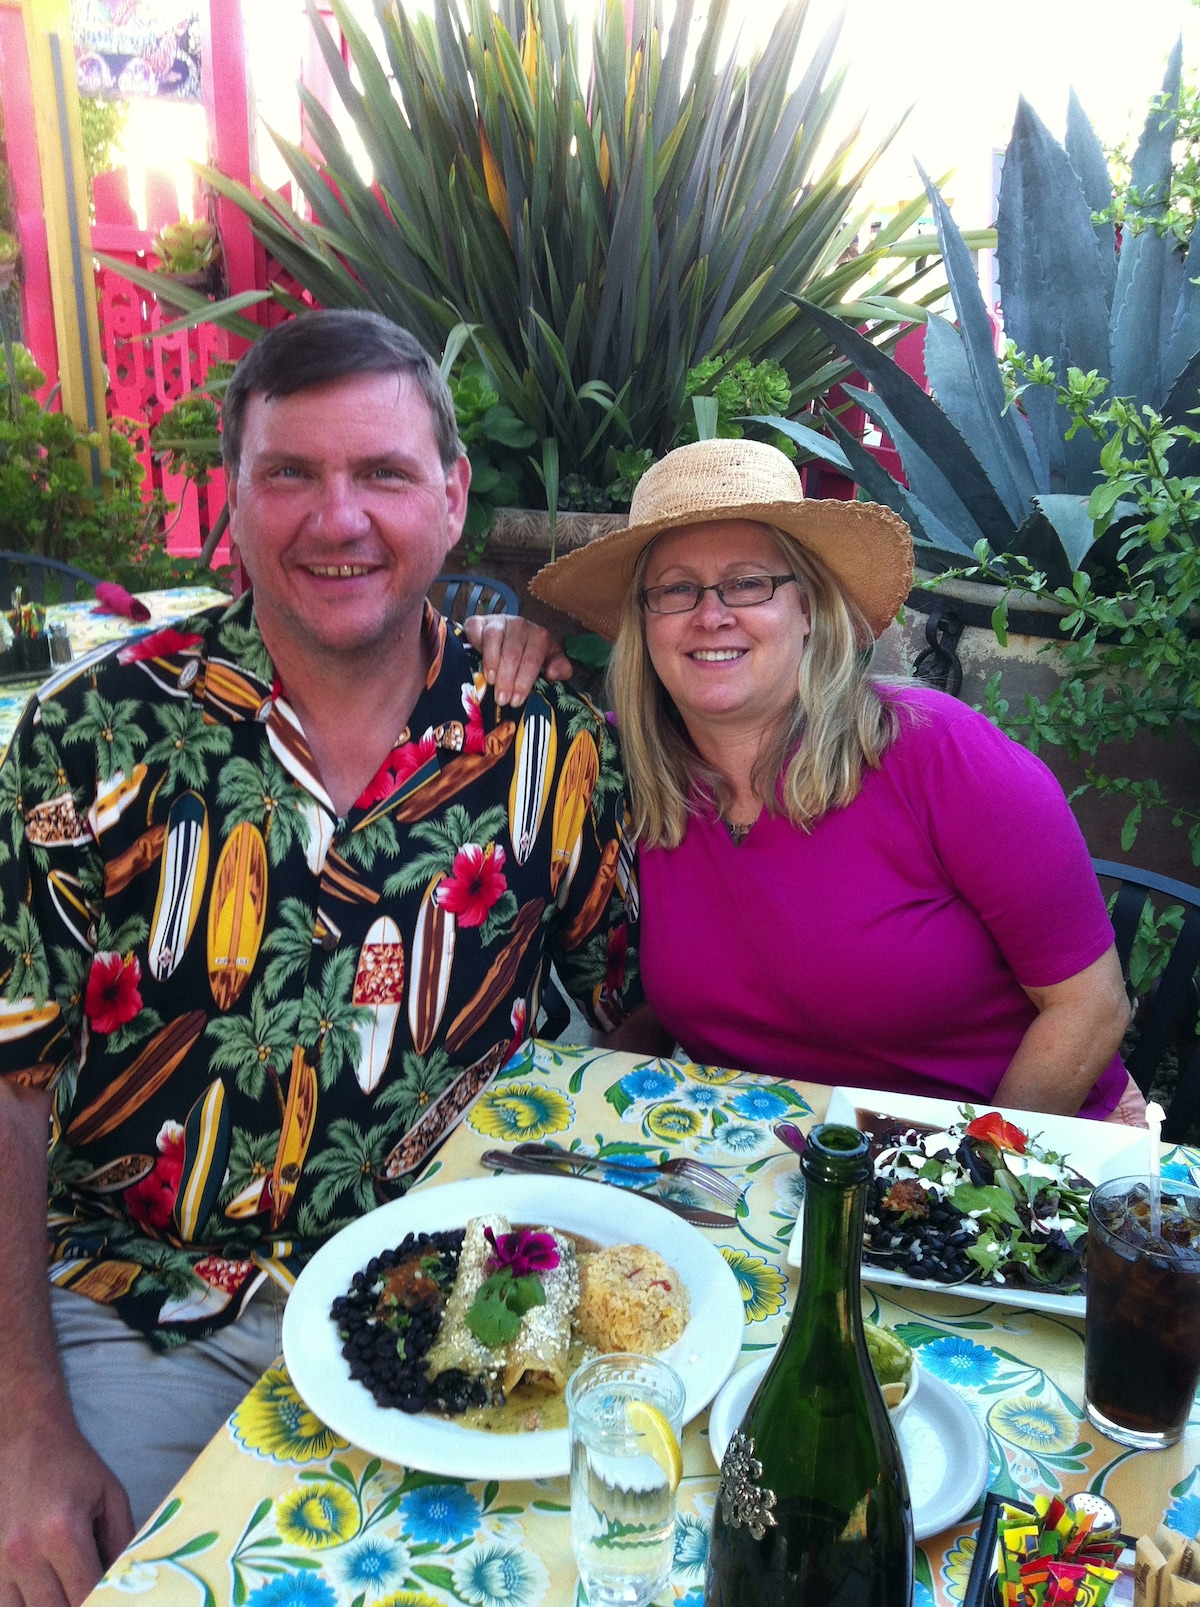 Karen And Dave From Soquel, CA